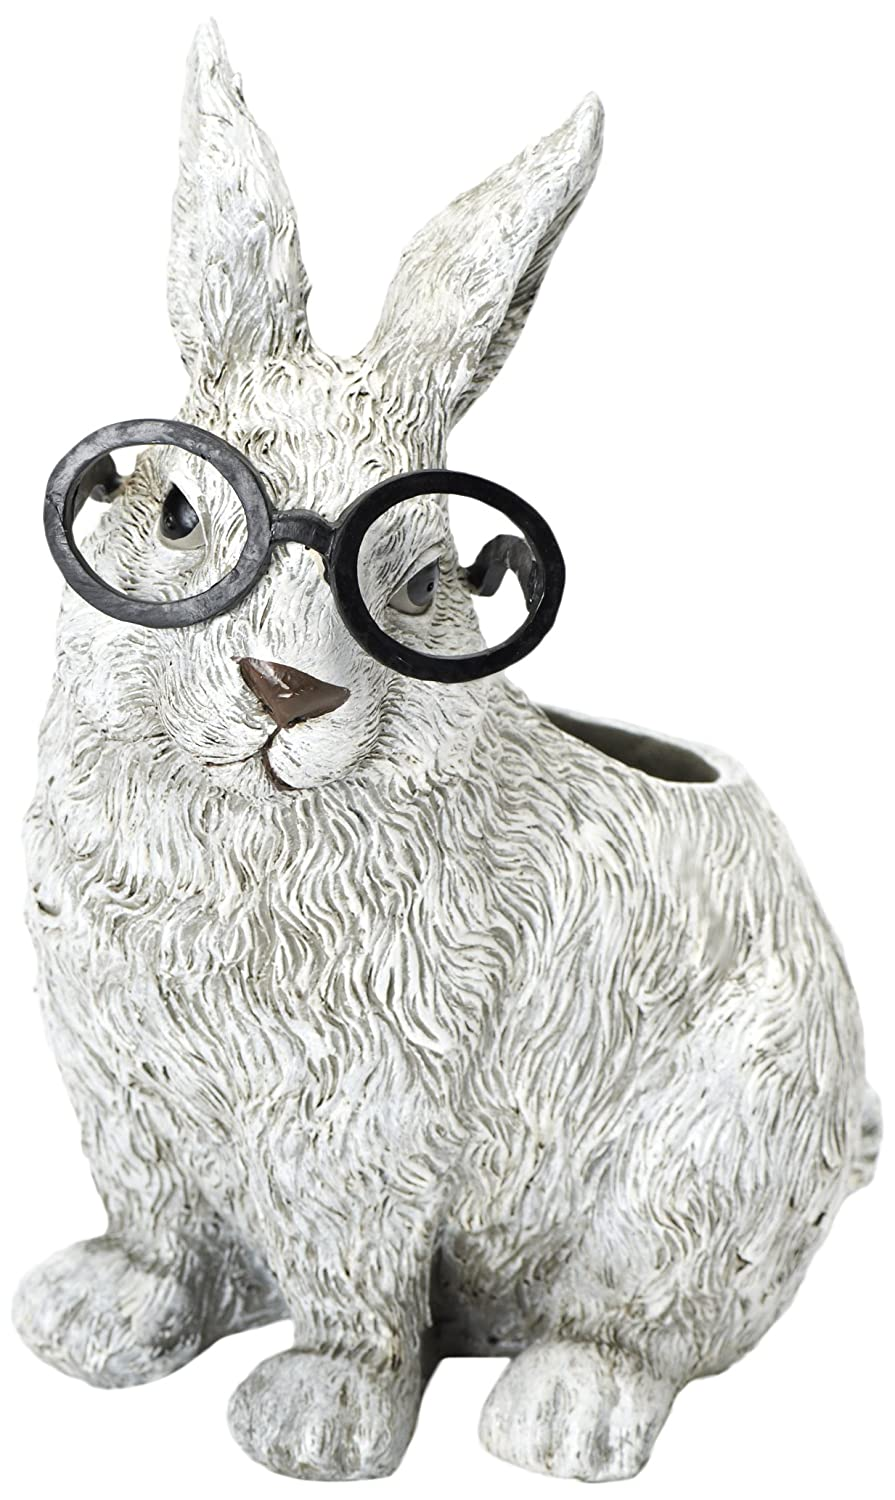 Roman Exclusive White Rabbit Wearing Silly Black Spectacles Planter, 9-Inch, Made of Dolomite/Resin